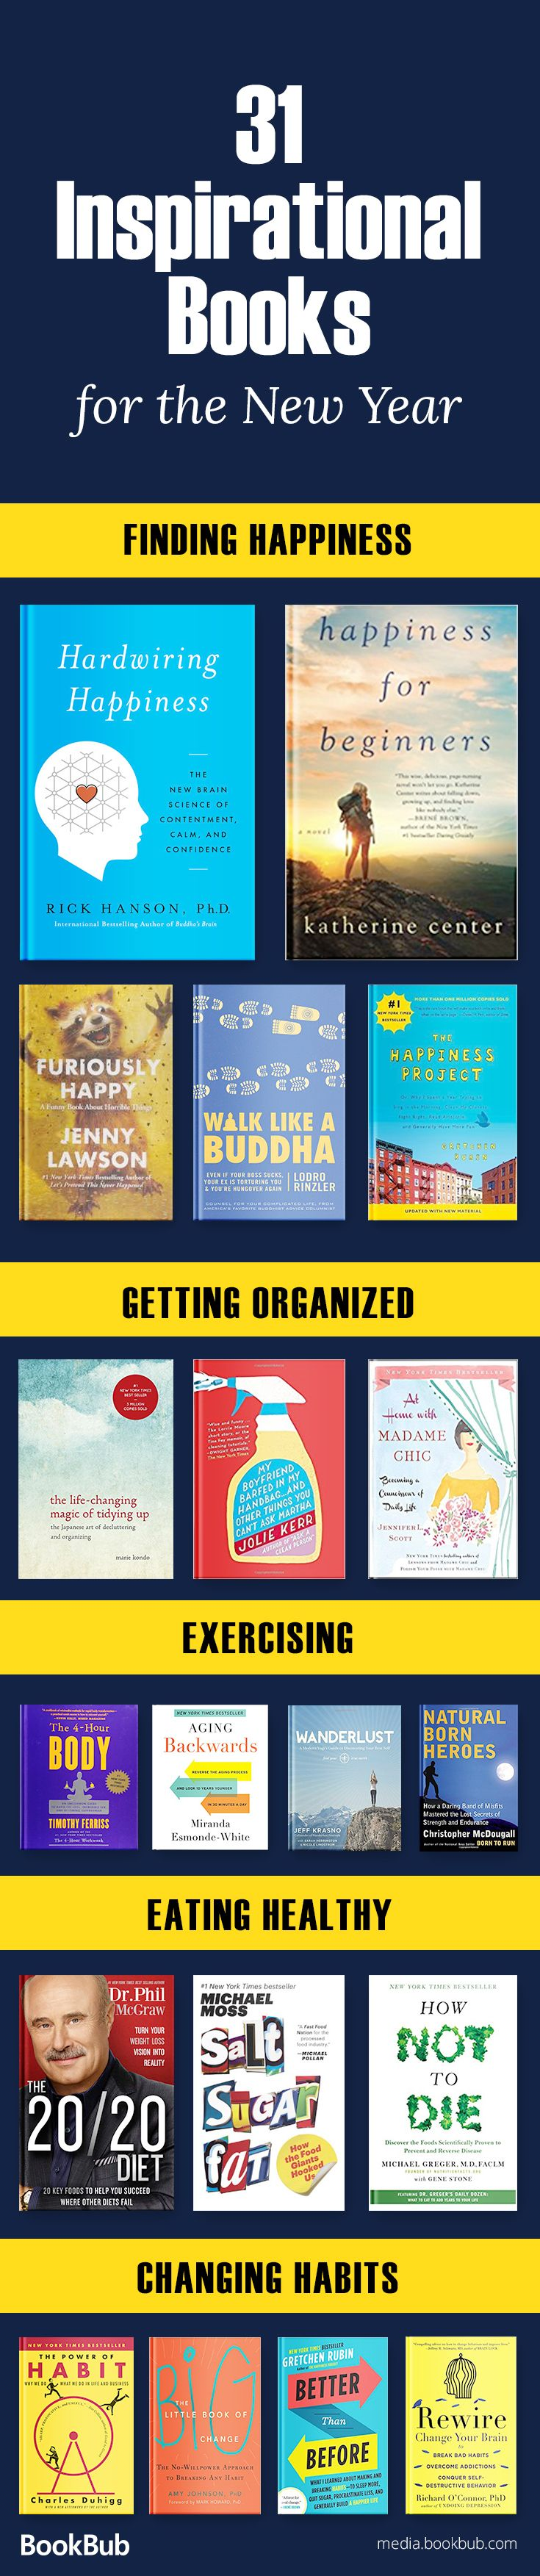 Check out our reading list of inspirational books, featuring motivational nonfiction, books to read 2018, life changing books for women, self help books, books with life lessons, and more.